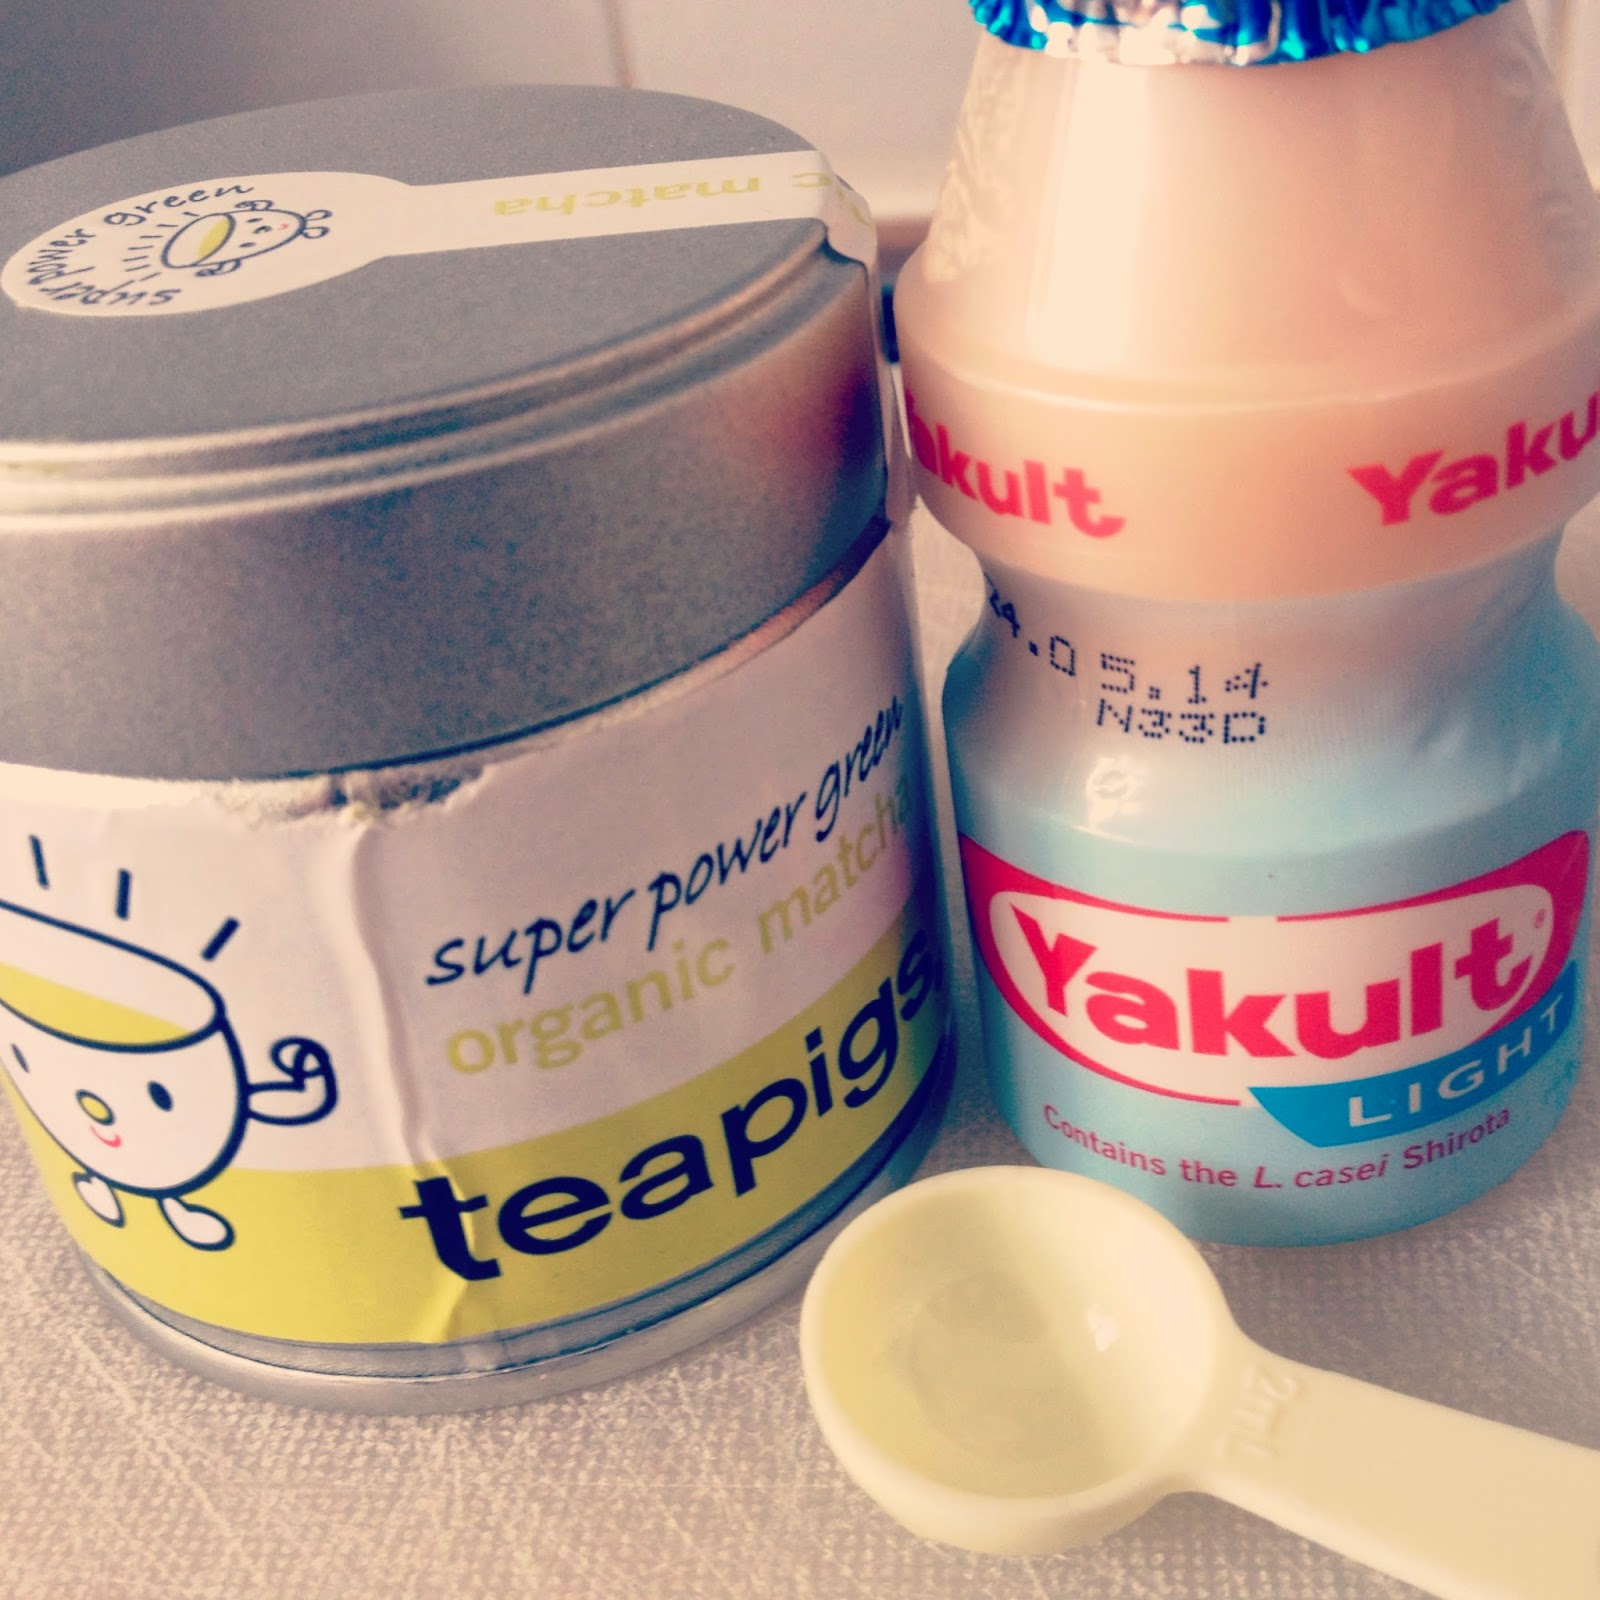 ThatRedheadSaid : teapigs matcha with yakult light